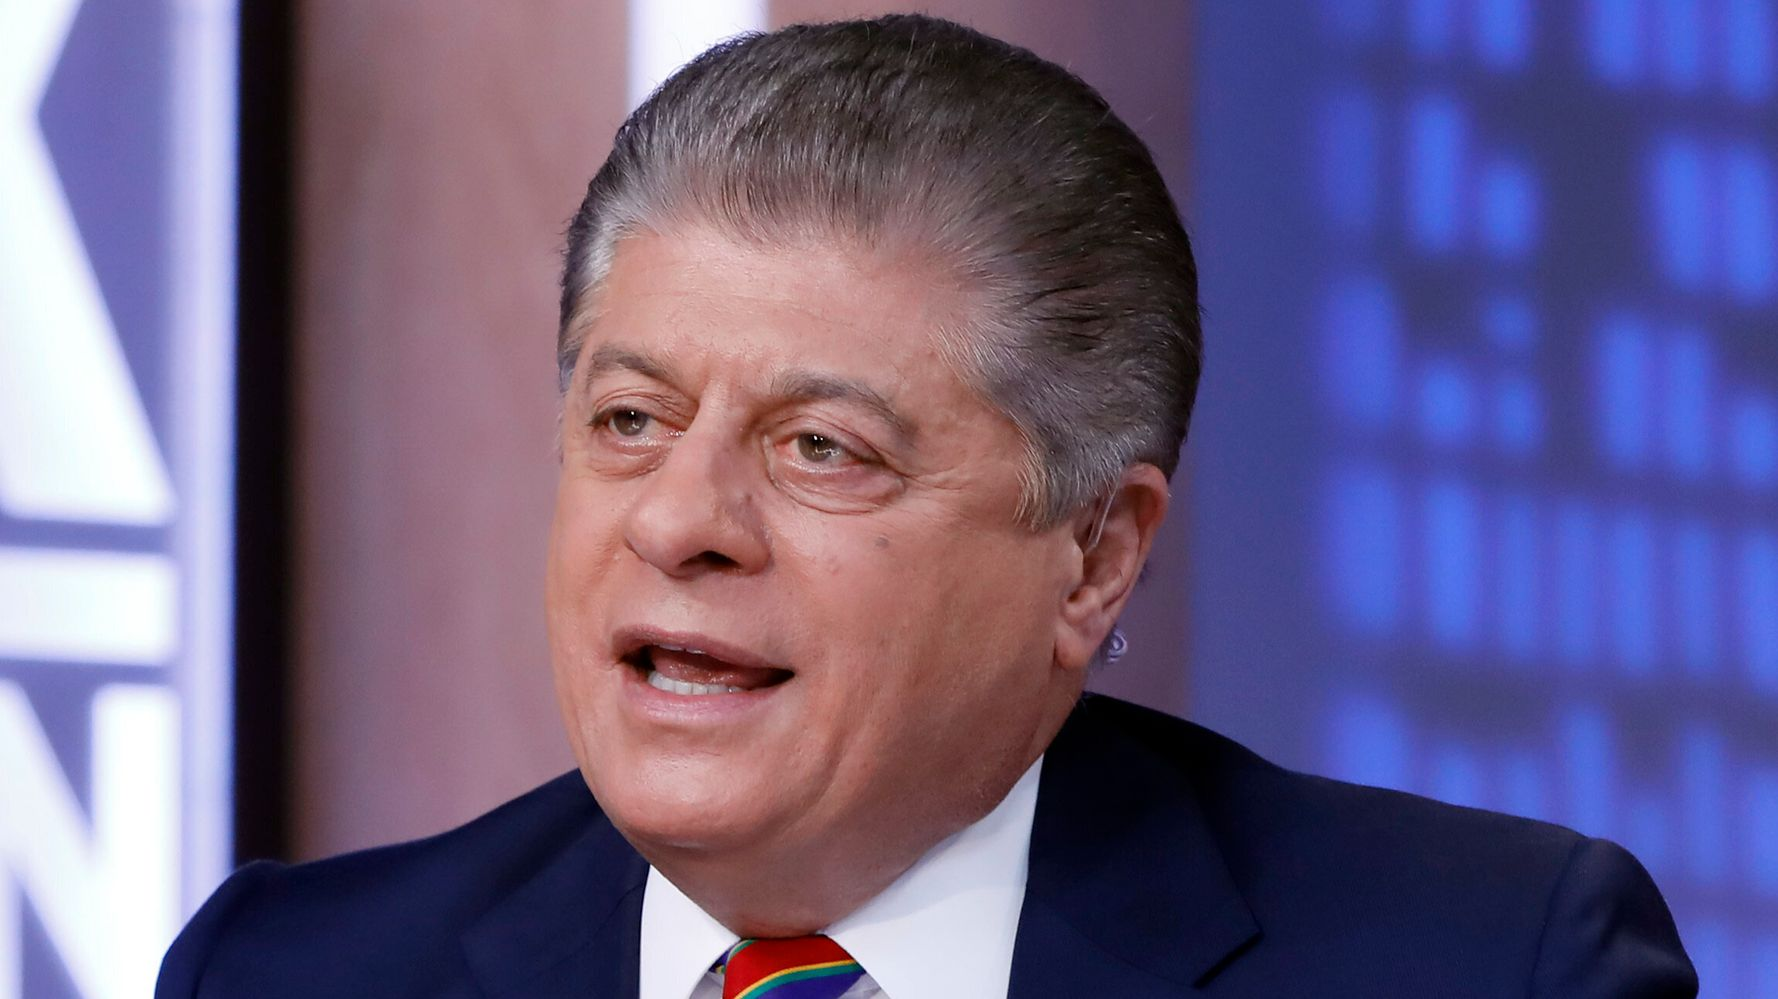 Fox News Legal Analyst Explains Why He 'Certainly Would' Vote To Impeach Trump